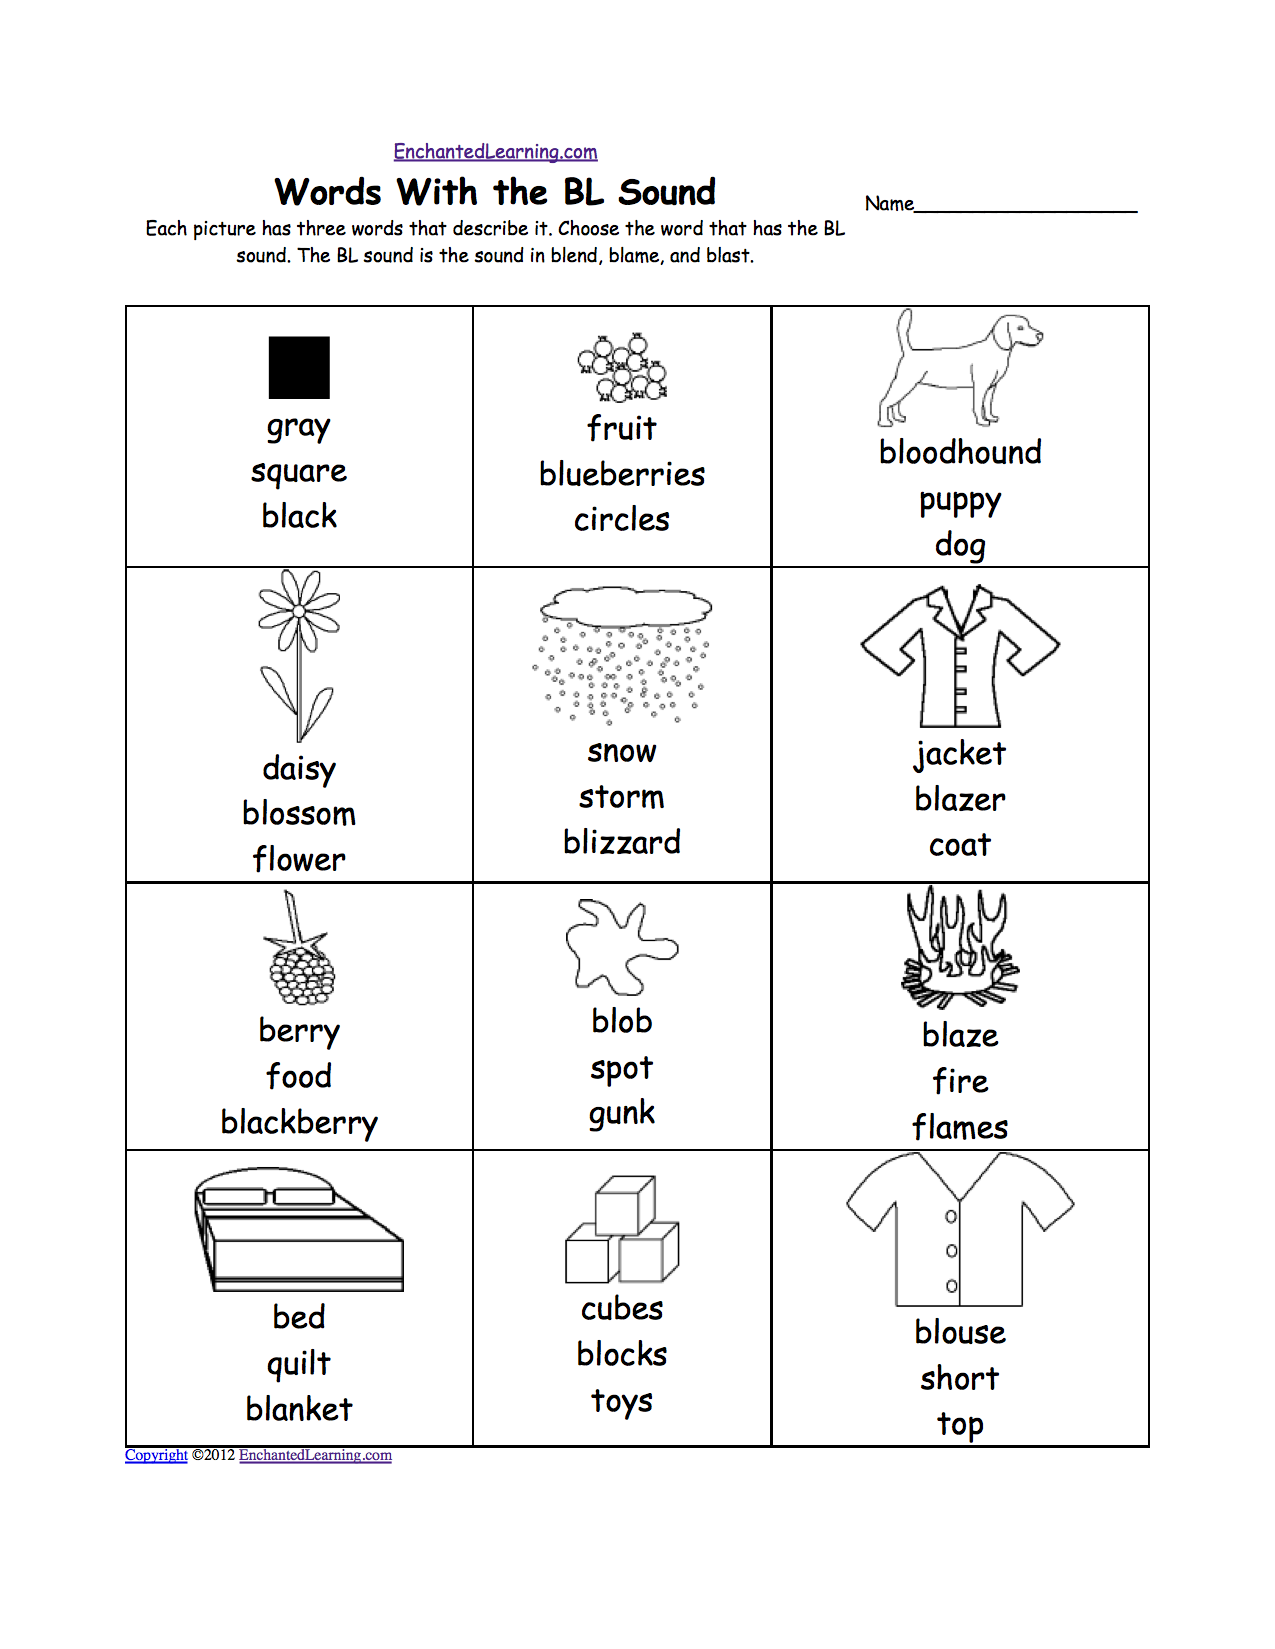 worksheet Letter B Worksheet letter b alphabet activities at enchantedlearning com